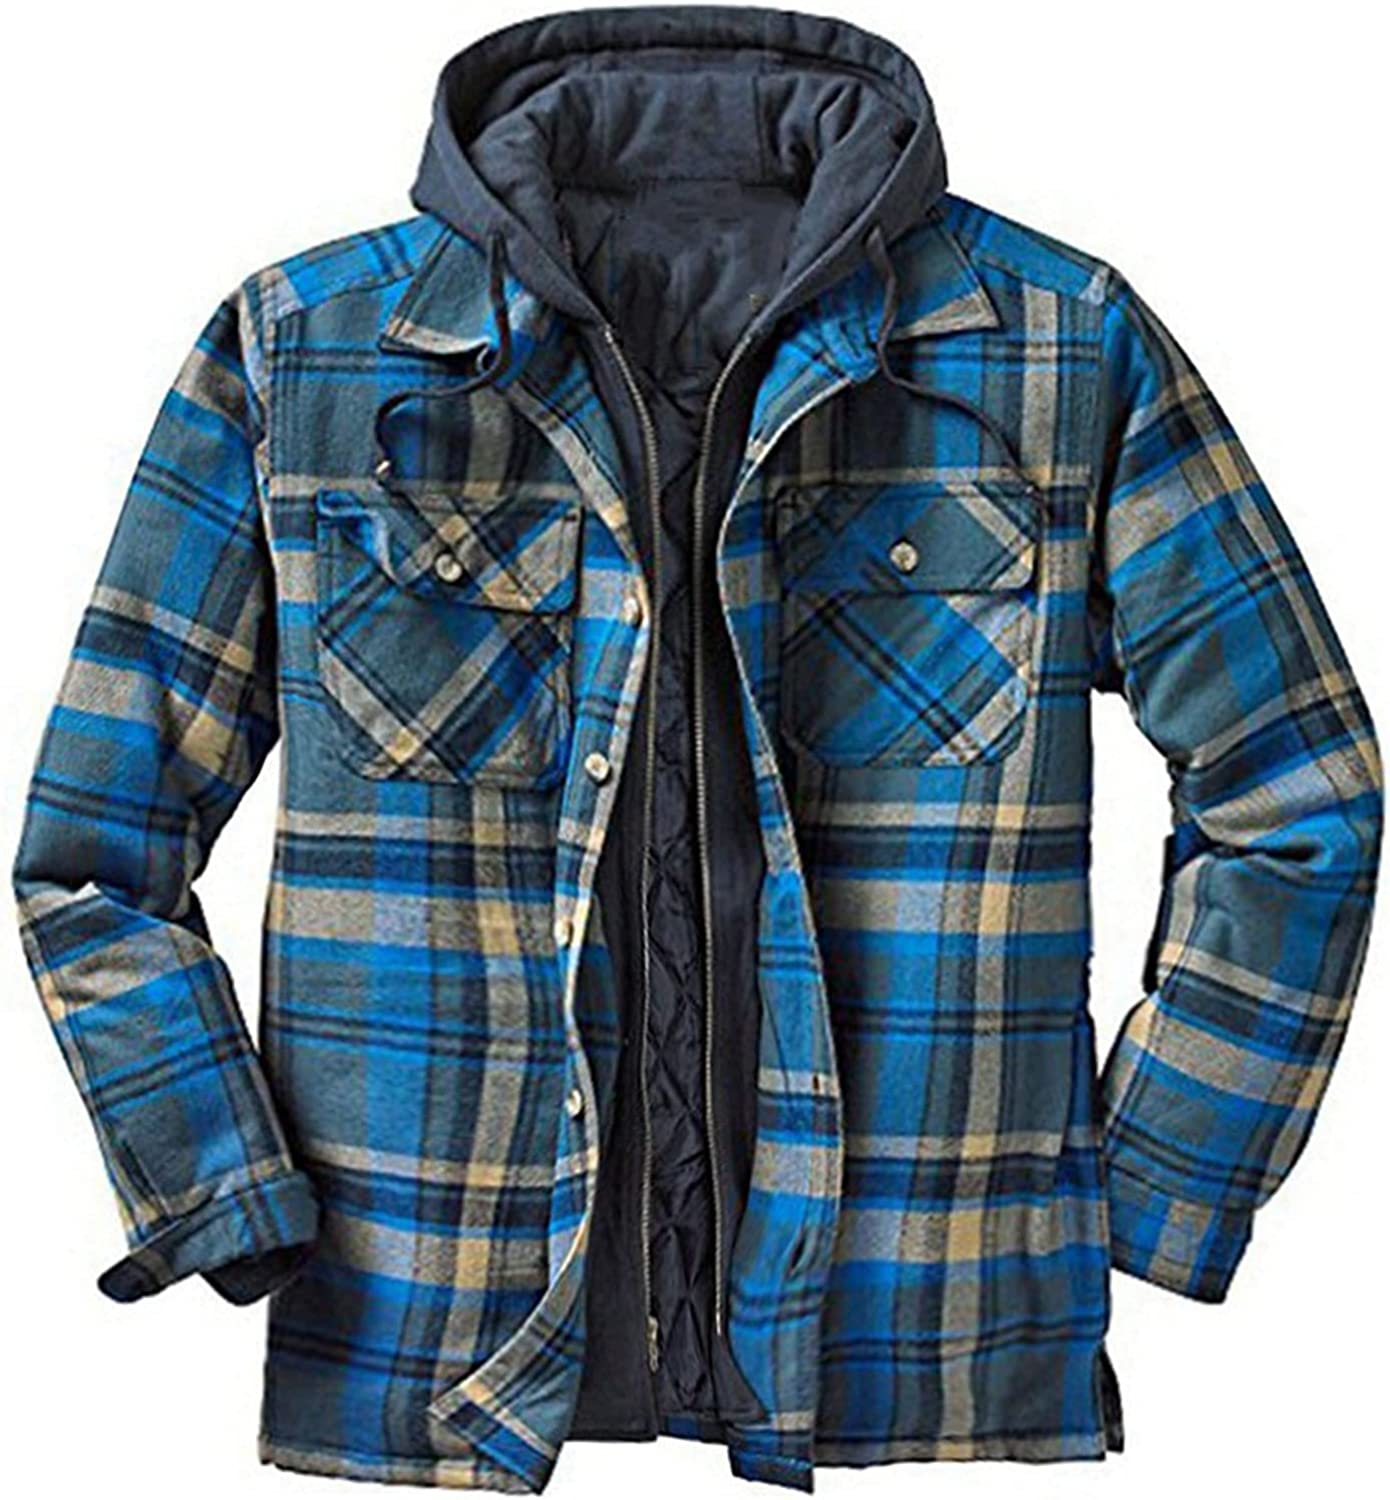 Men's Plaid Stamp Jackets,Long Sleeved Warm Lined Plush Thicken Shirt V52